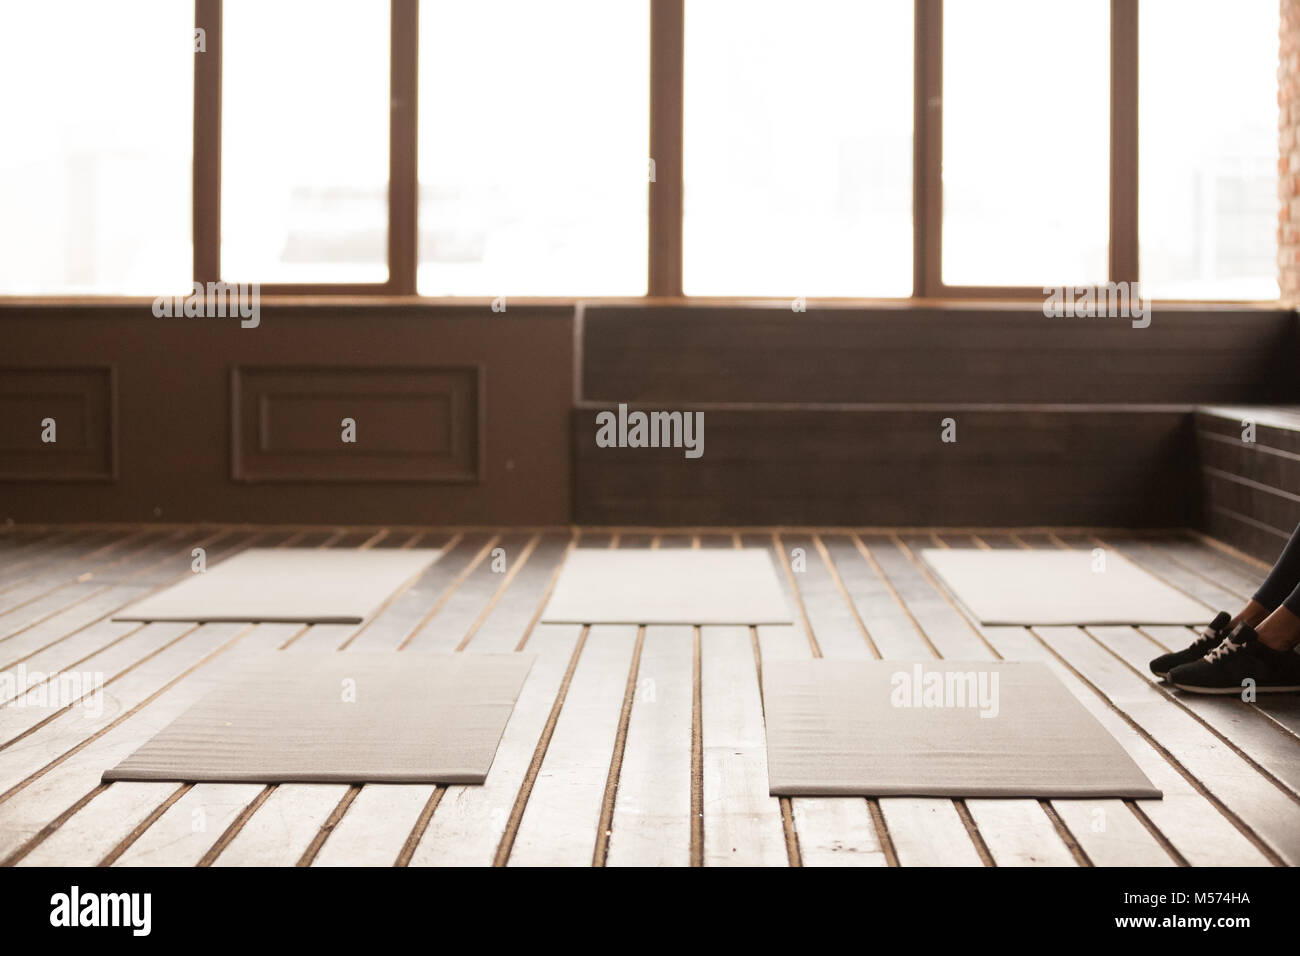 Studio with yoga mats on wooden floor for group training - Stock Image